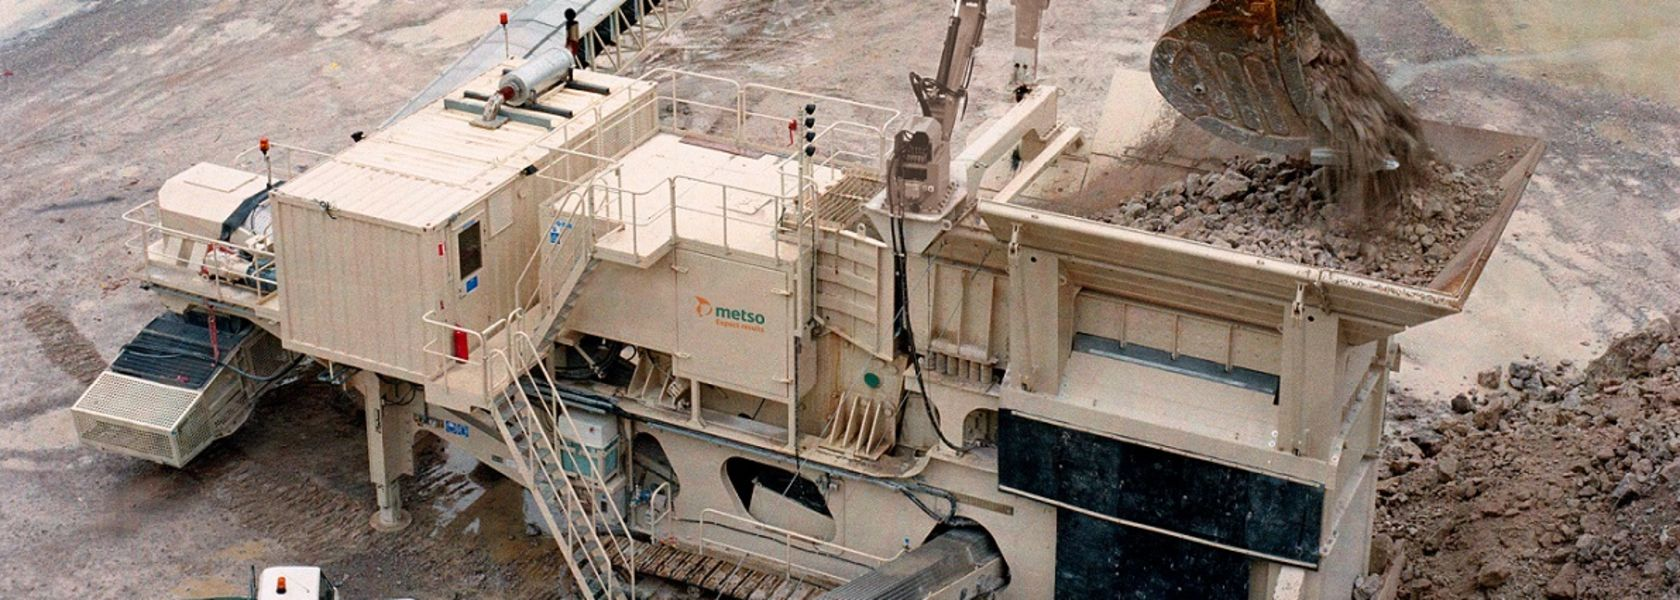 Metso introduces integrated in-the-pit solutions